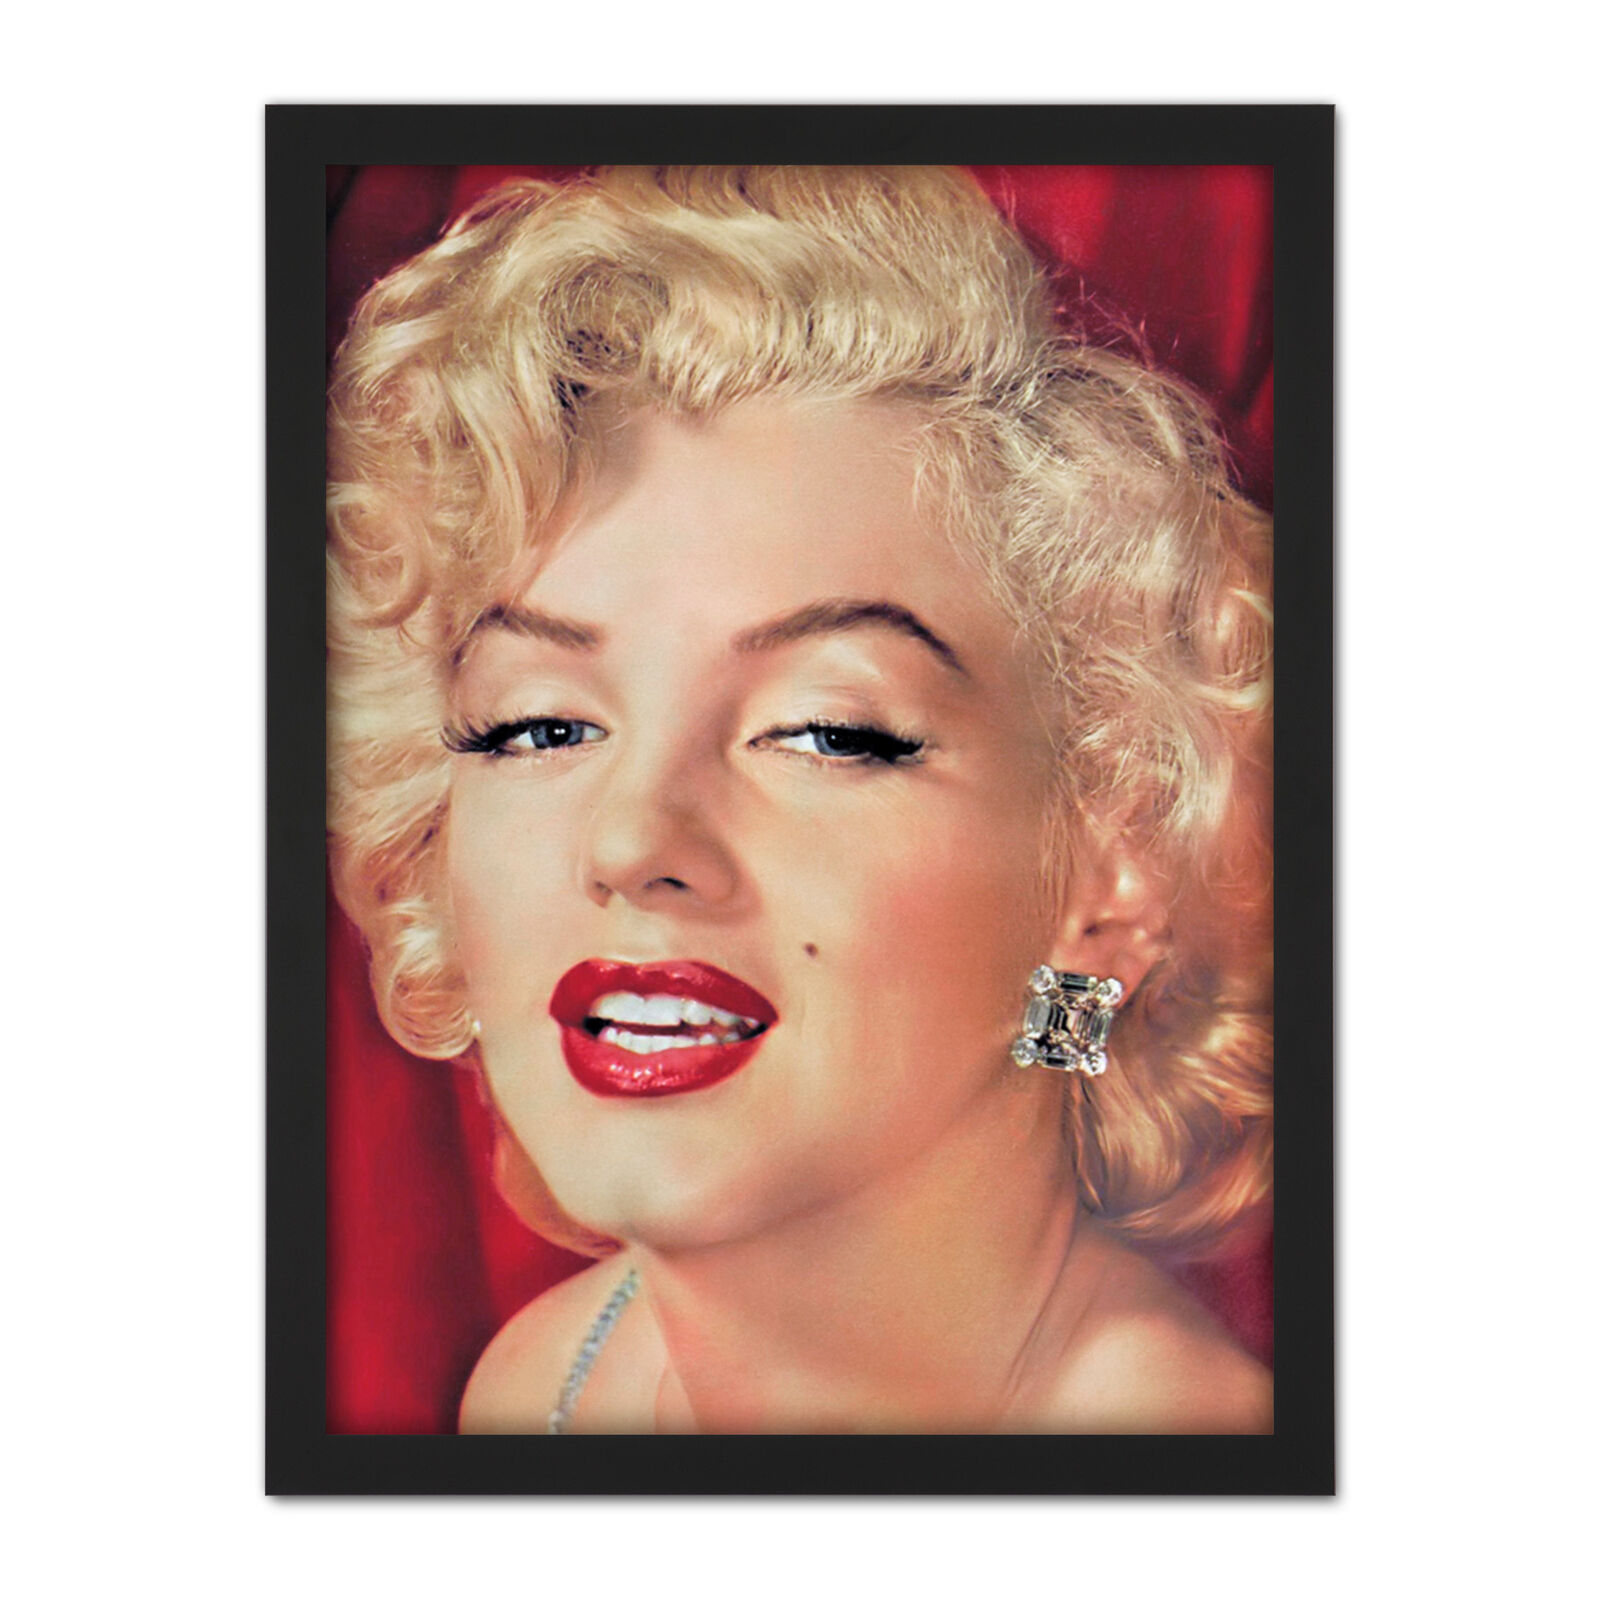 Portrait Promo Movie Actress Marilyn Monroe Photo Framed Wall Art Print 18X24 In